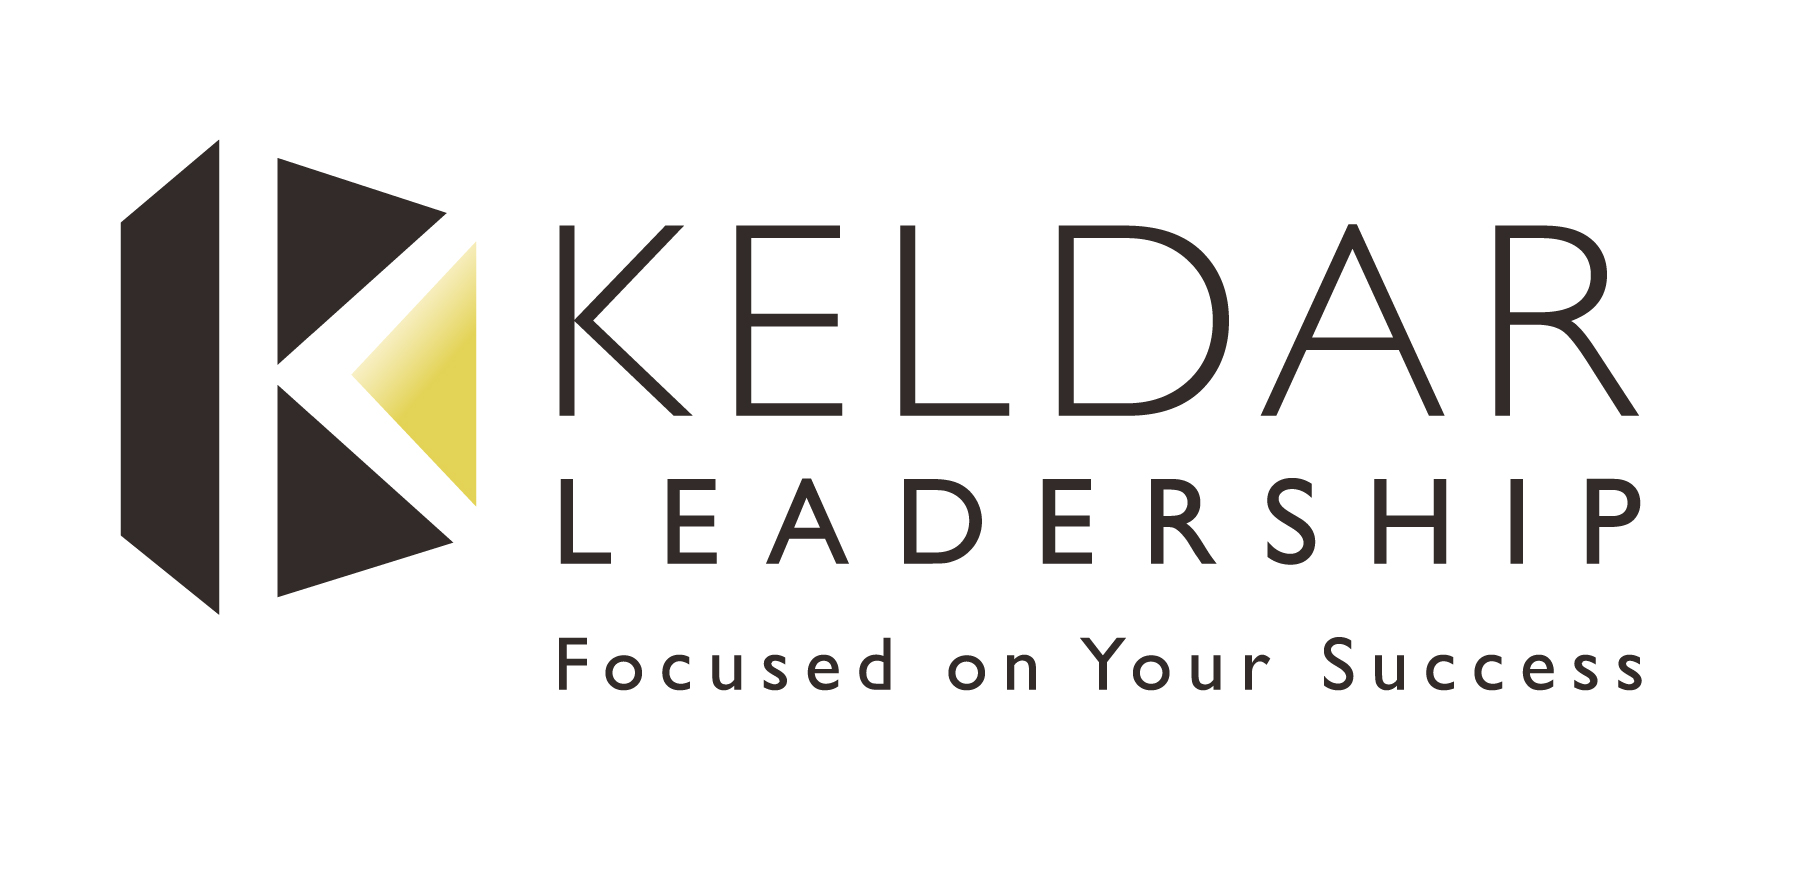 Keldar Leadership: Focused on Your Success